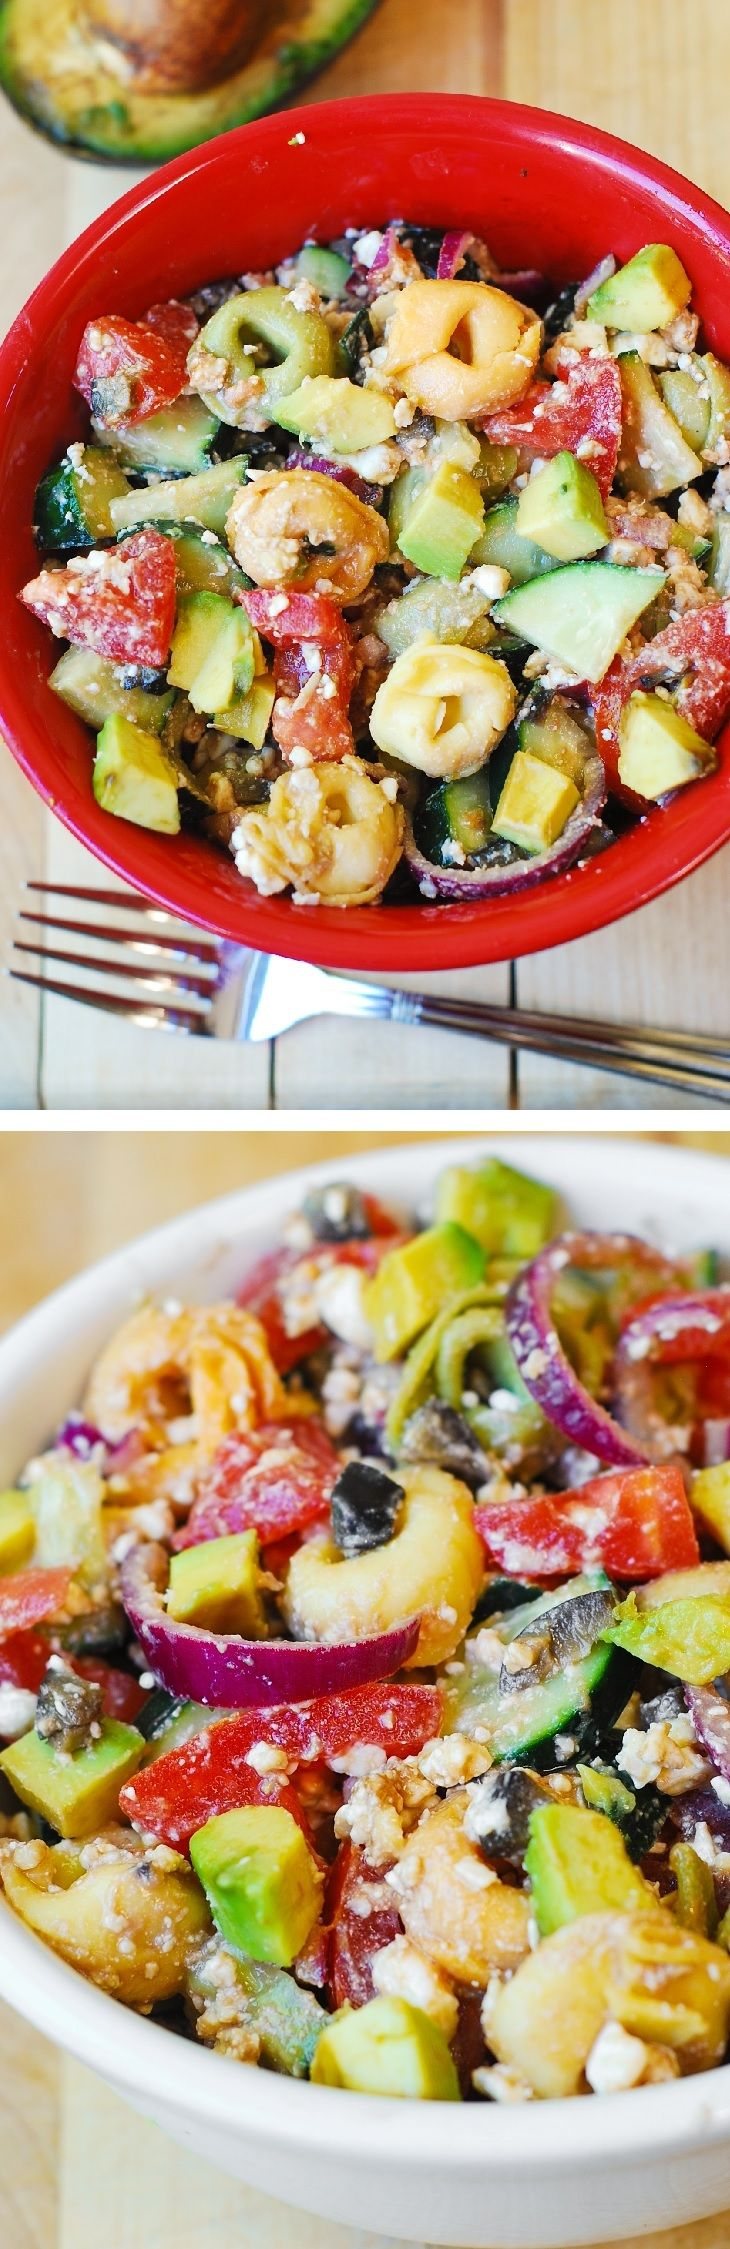 Greek Tortellini Salad with Tomatoes, Avocados, Cucumbers